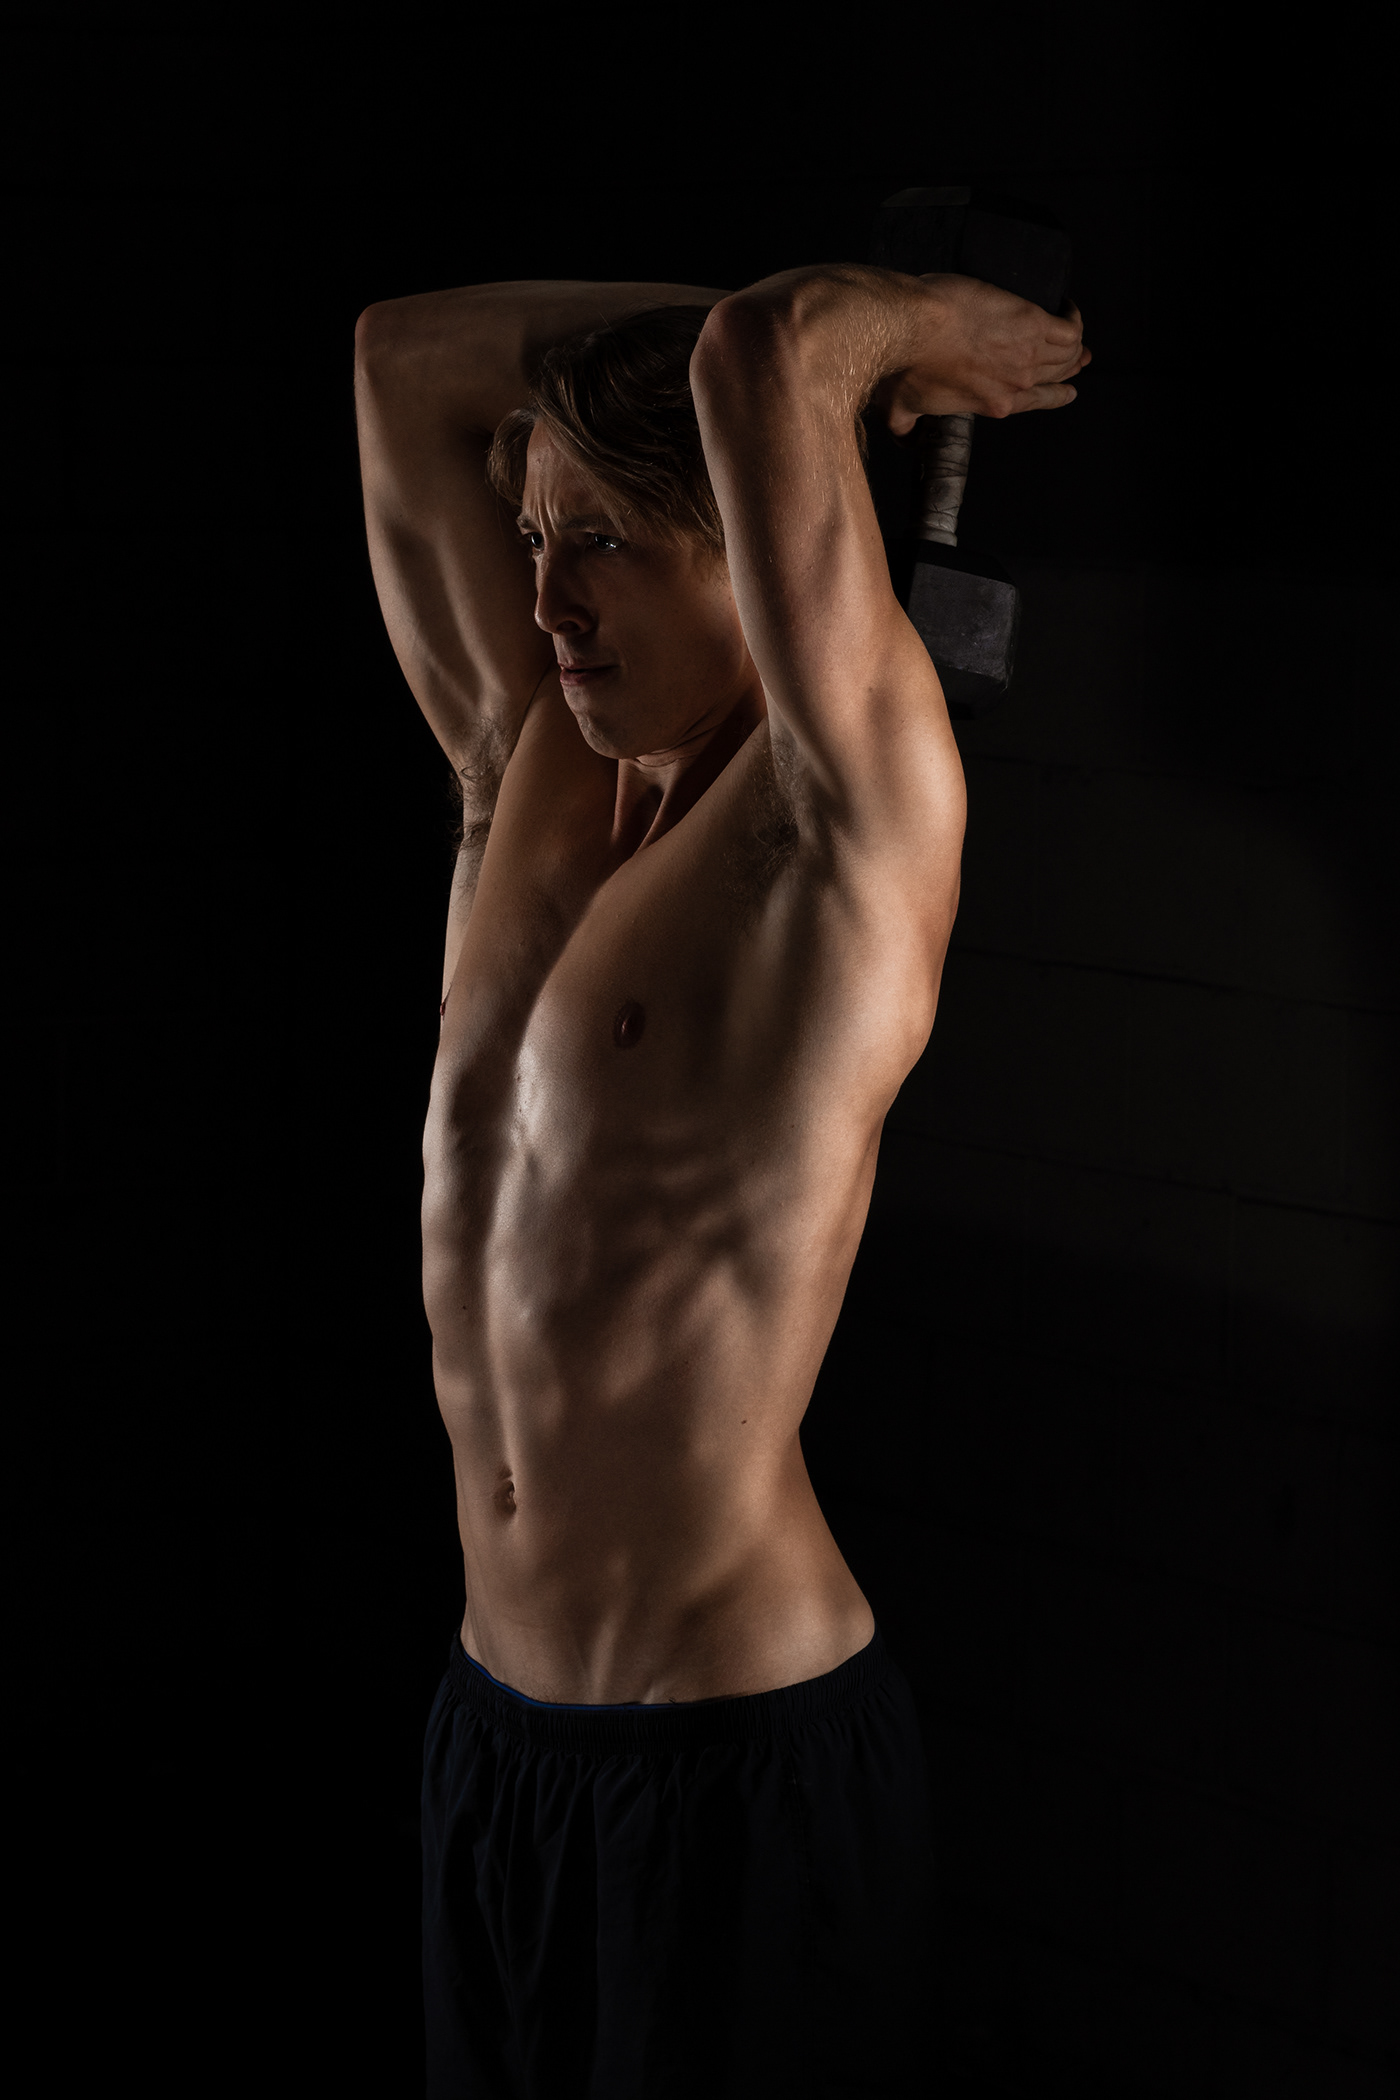 athlete athletic Body Building fitness lighting men Photography  Physique Portraiture strength